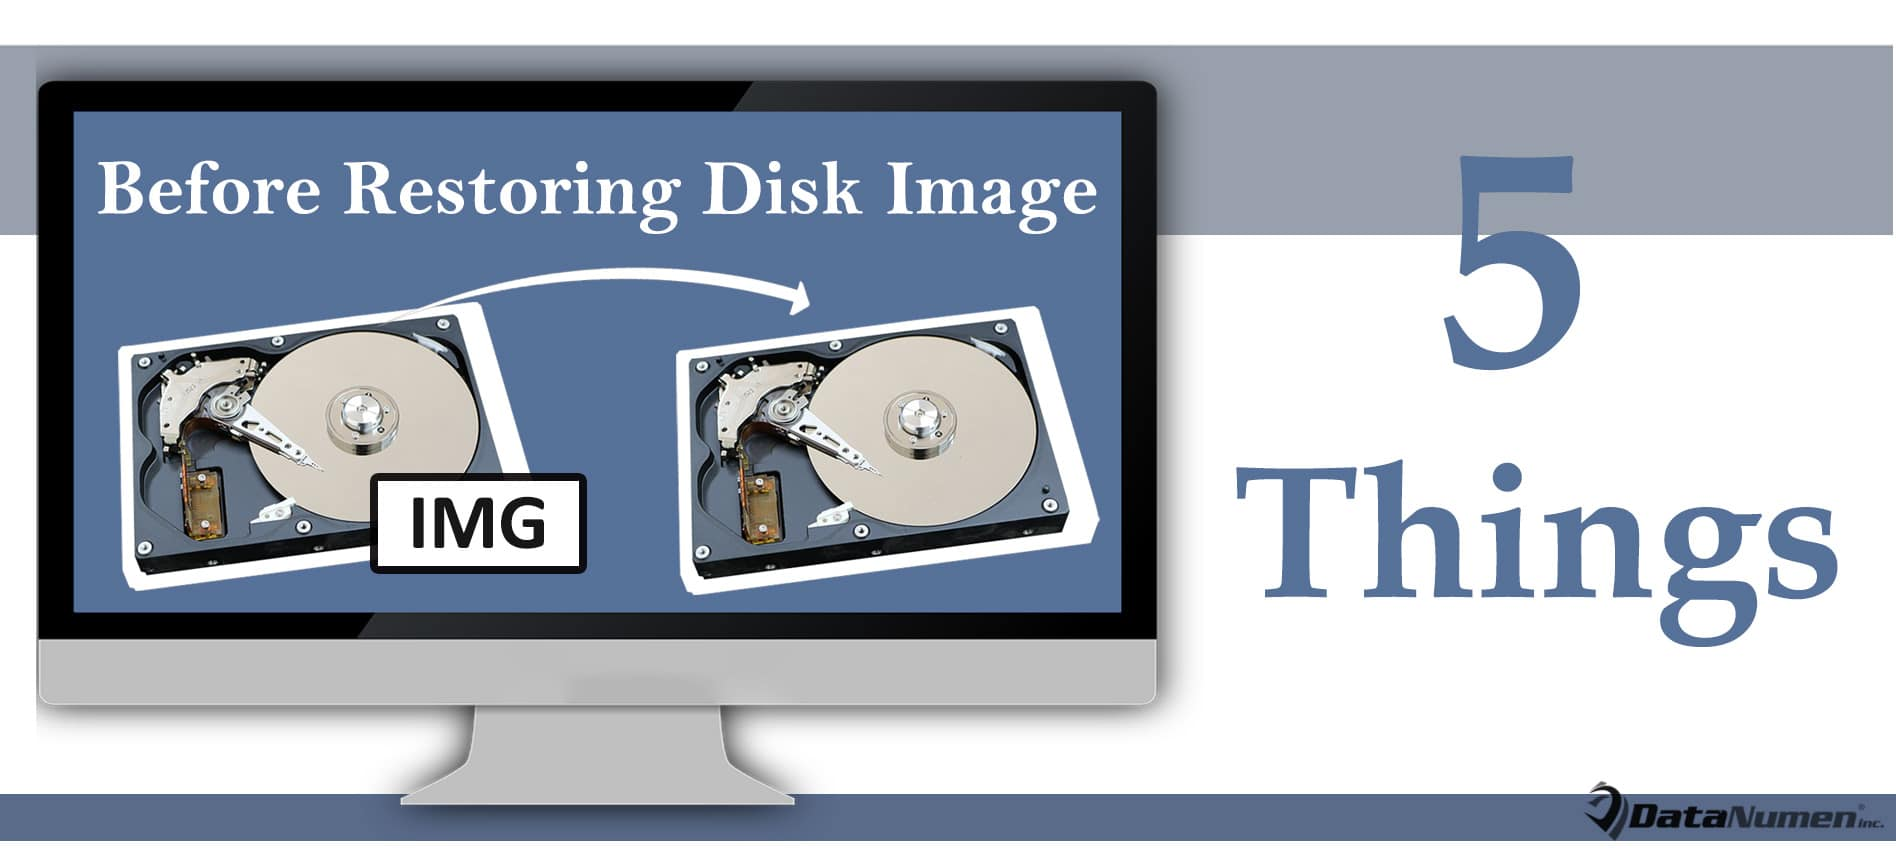 5 Vital Things You Must Do Before Restoring a Disk Image